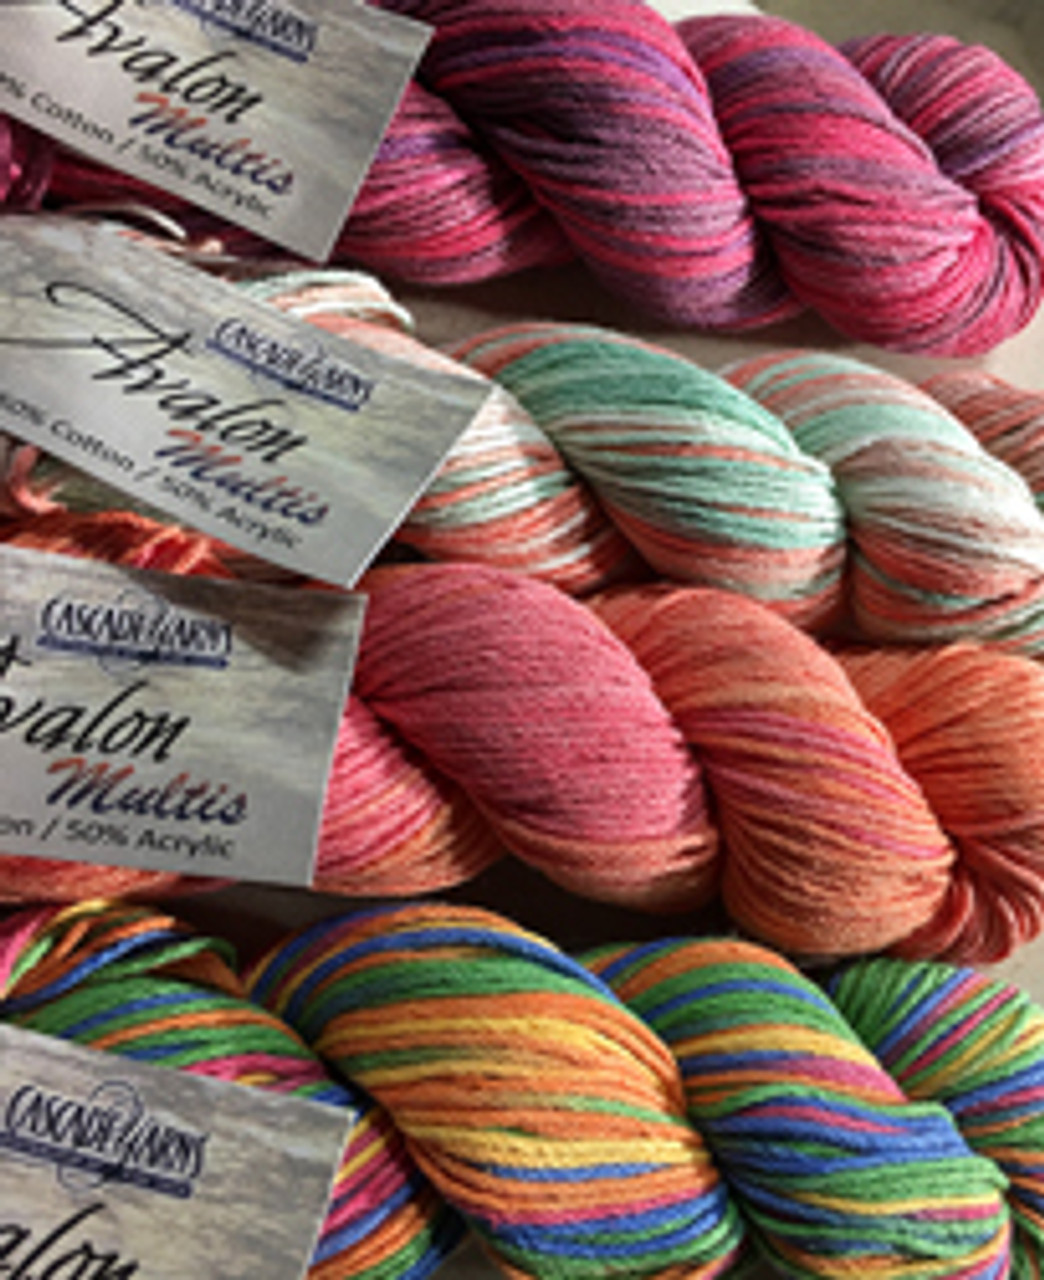 Cascade Yarn Avalon, 50% Cotton, 50% Acrylic